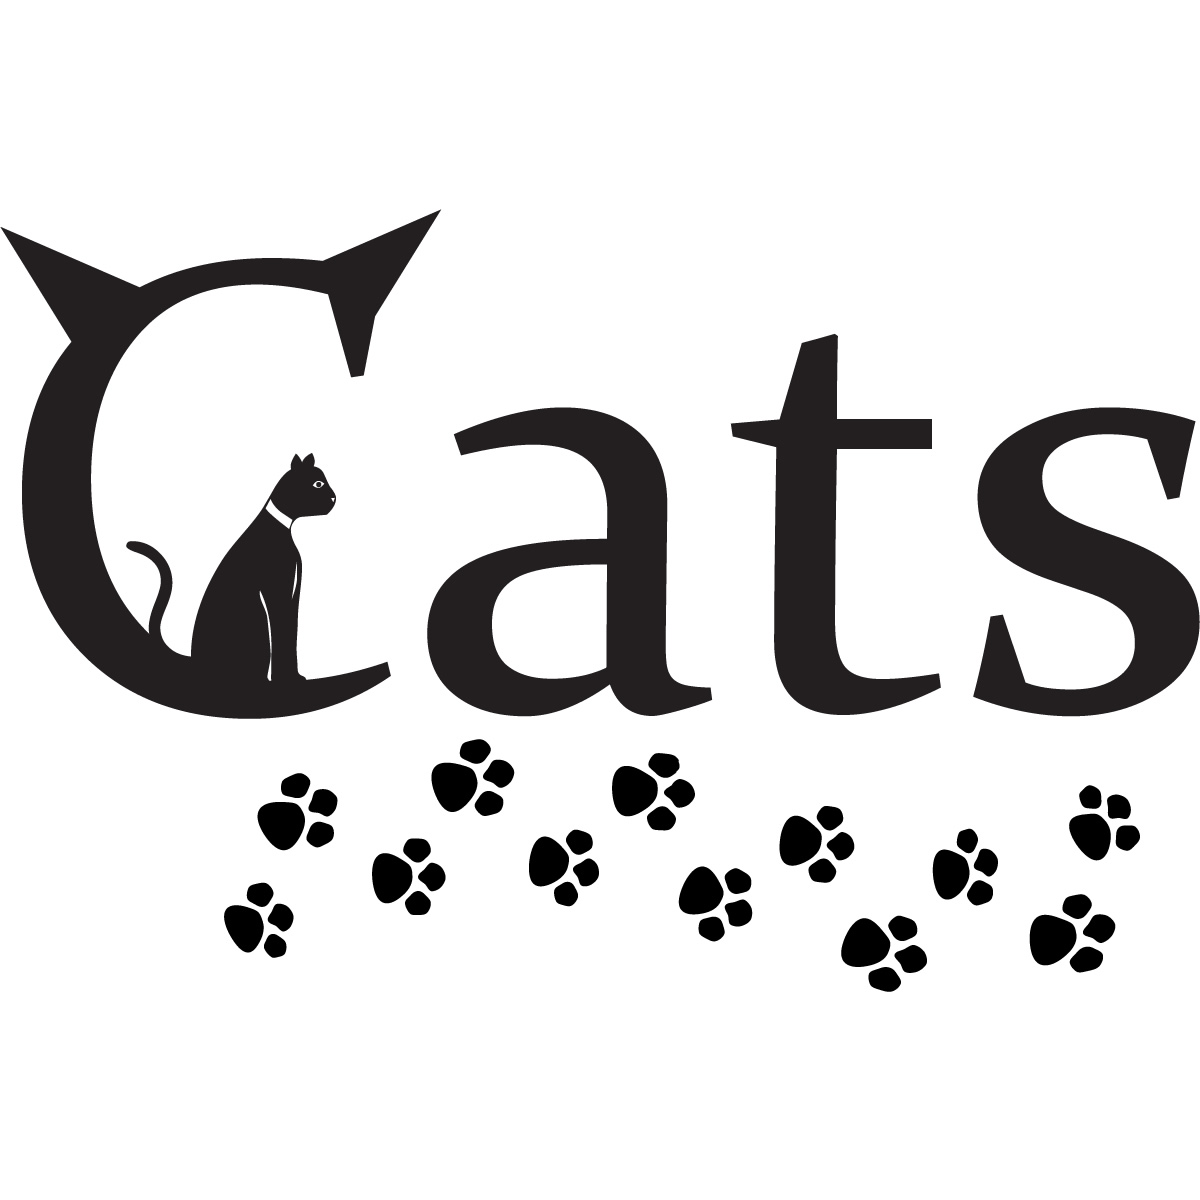 Paws Animal Print Prints Animals Cat Paw - ClipArt Best - ClipArt Best